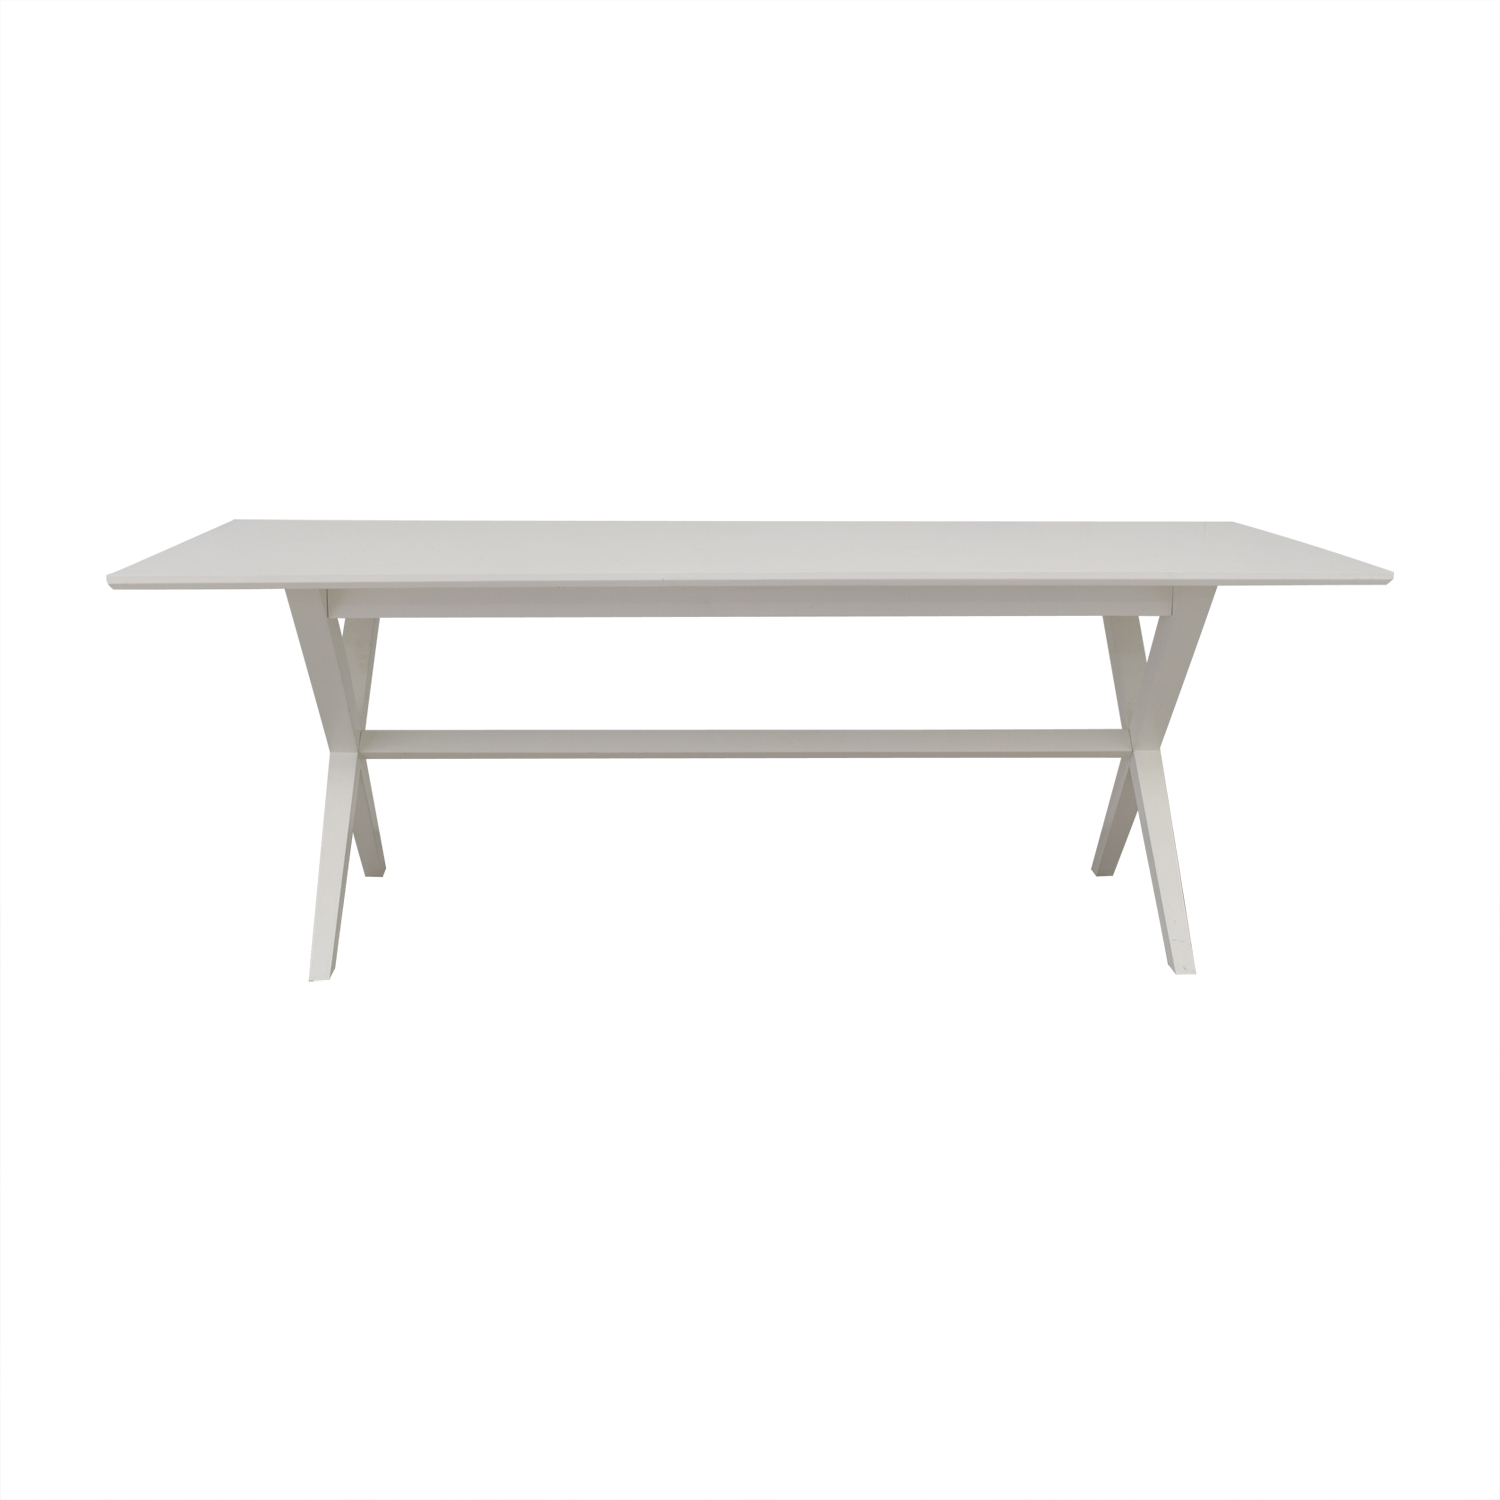 buy Crate & Barrel White Wood Dining Table Crate & Barrel Sofas